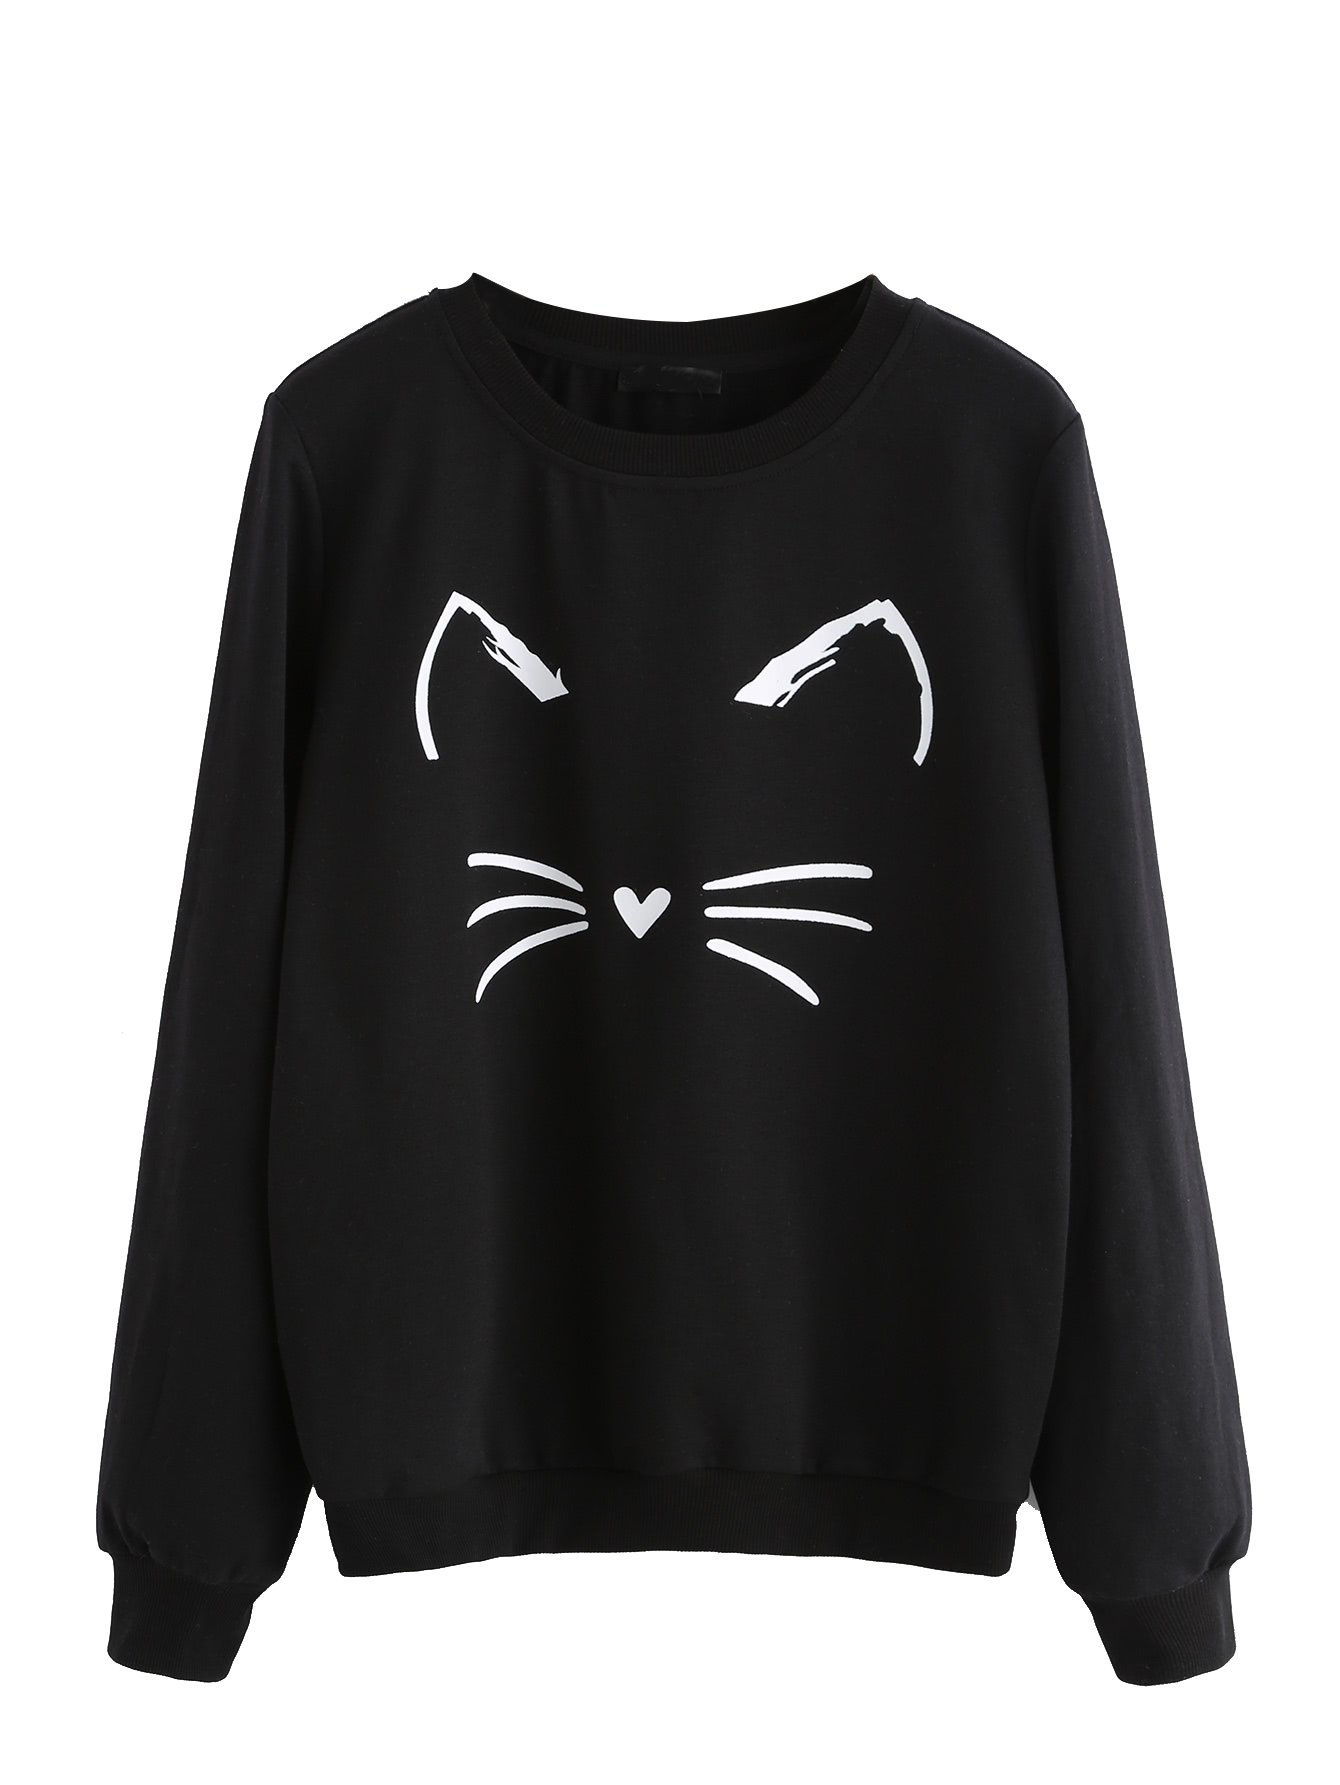 ROMWE Women's Cat Print Sweatshirt Long Sleeve Loose Pullover Shirt Black M